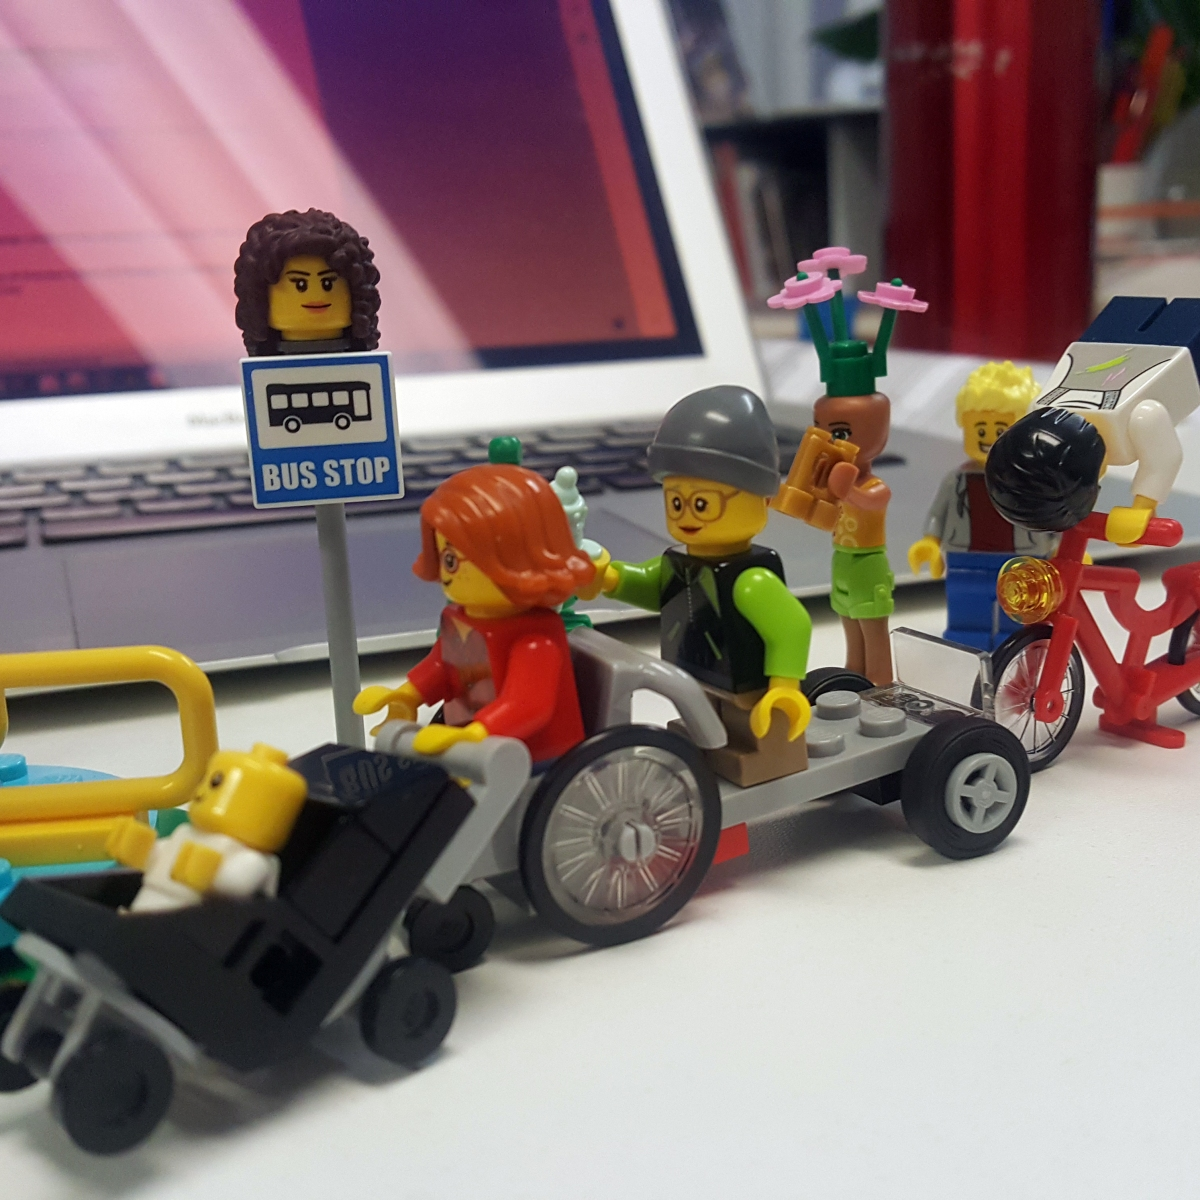 Playful Inclusionaries meeting with Lego characters